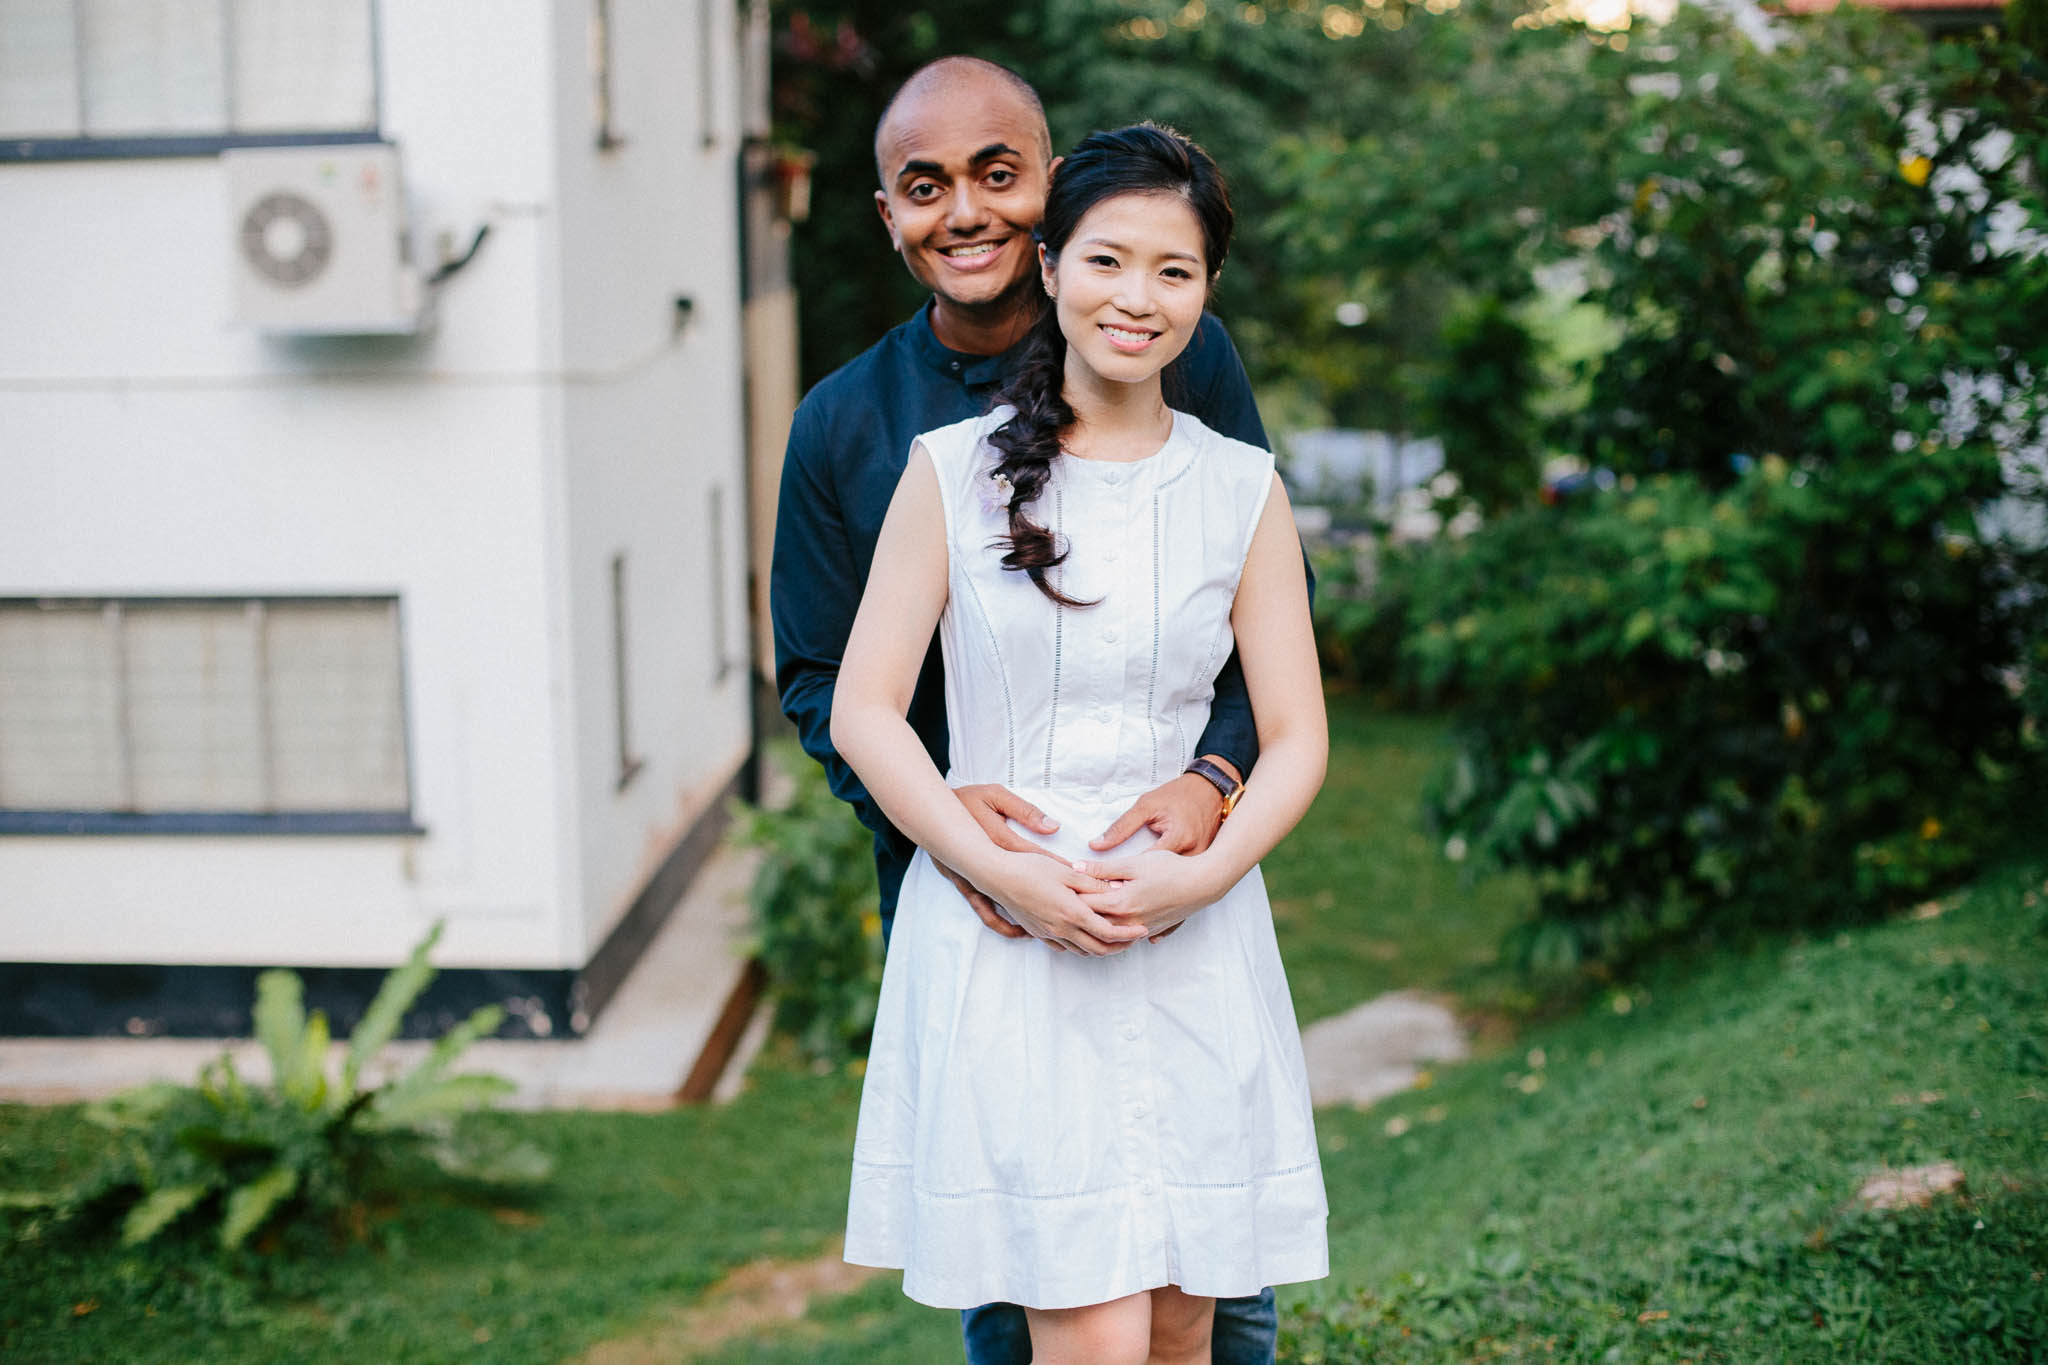 singapore-wedding-photographer-pre-wedding-jonathan-alicia-028.jpg